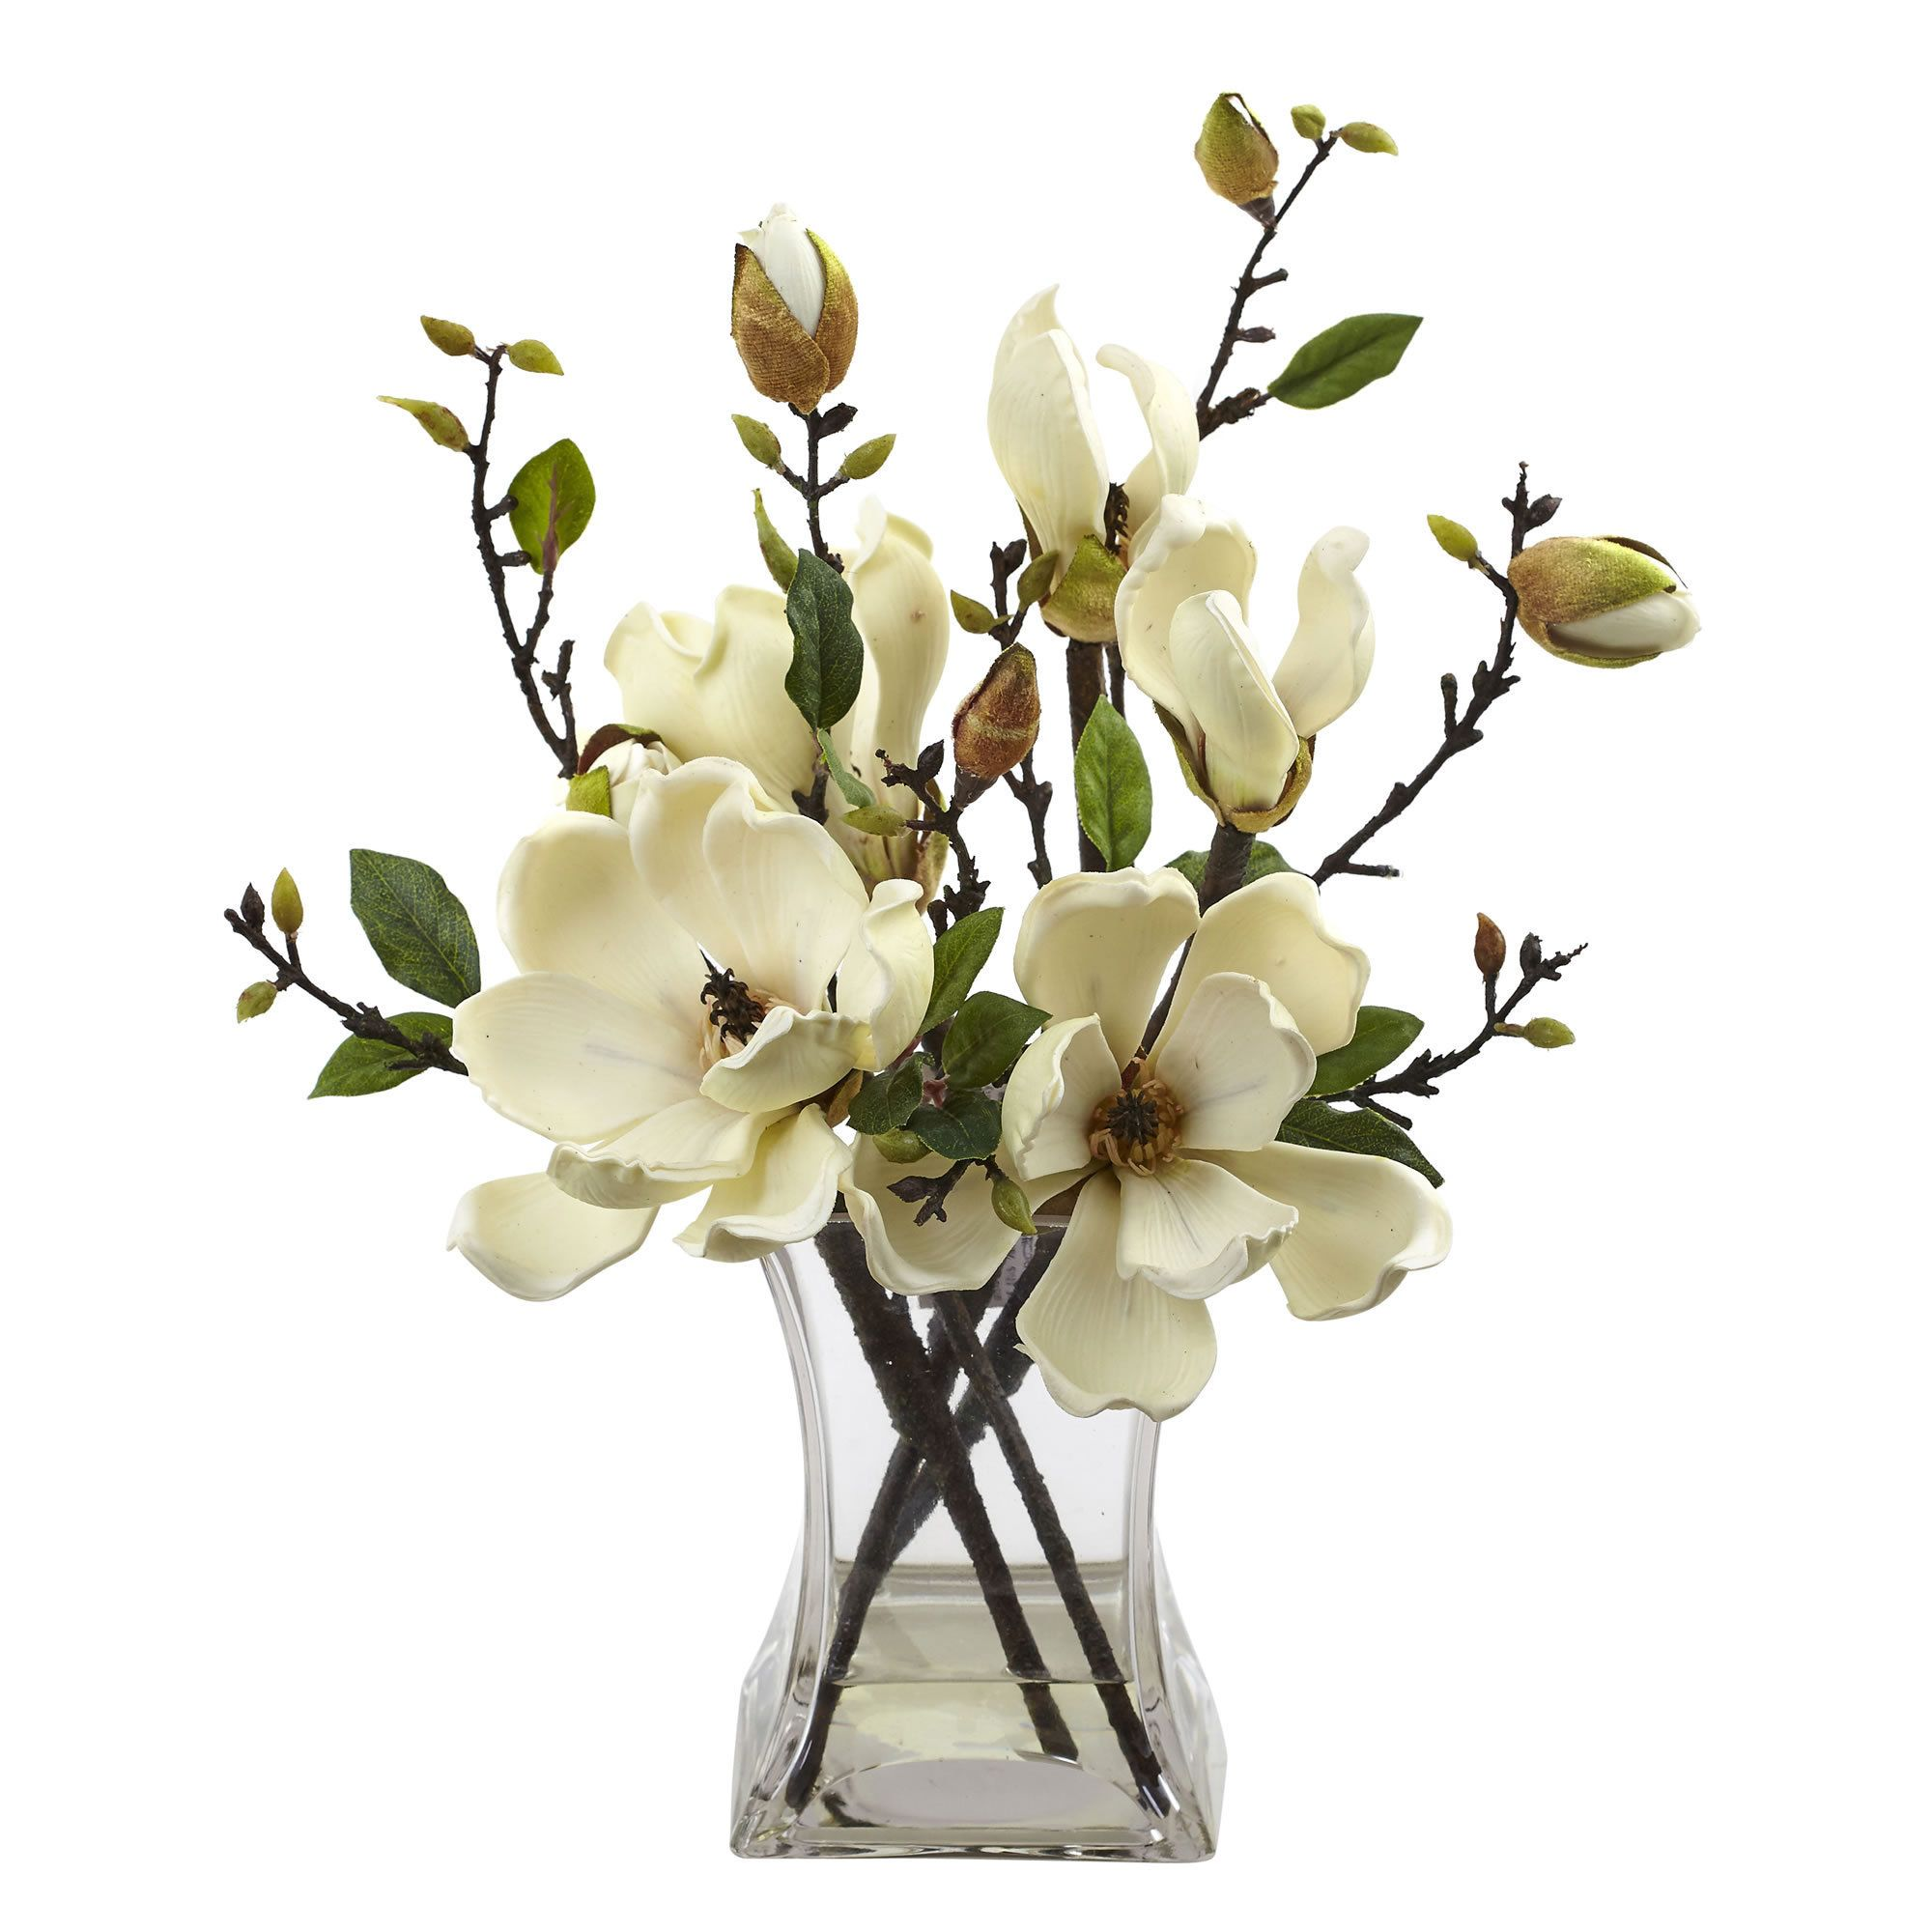 Online Shopping Bedding Furniture Electronics Jewelry Clothing More Artificial Flower Arrangements Artificial Magnolia Arrangements Flower Arrangements